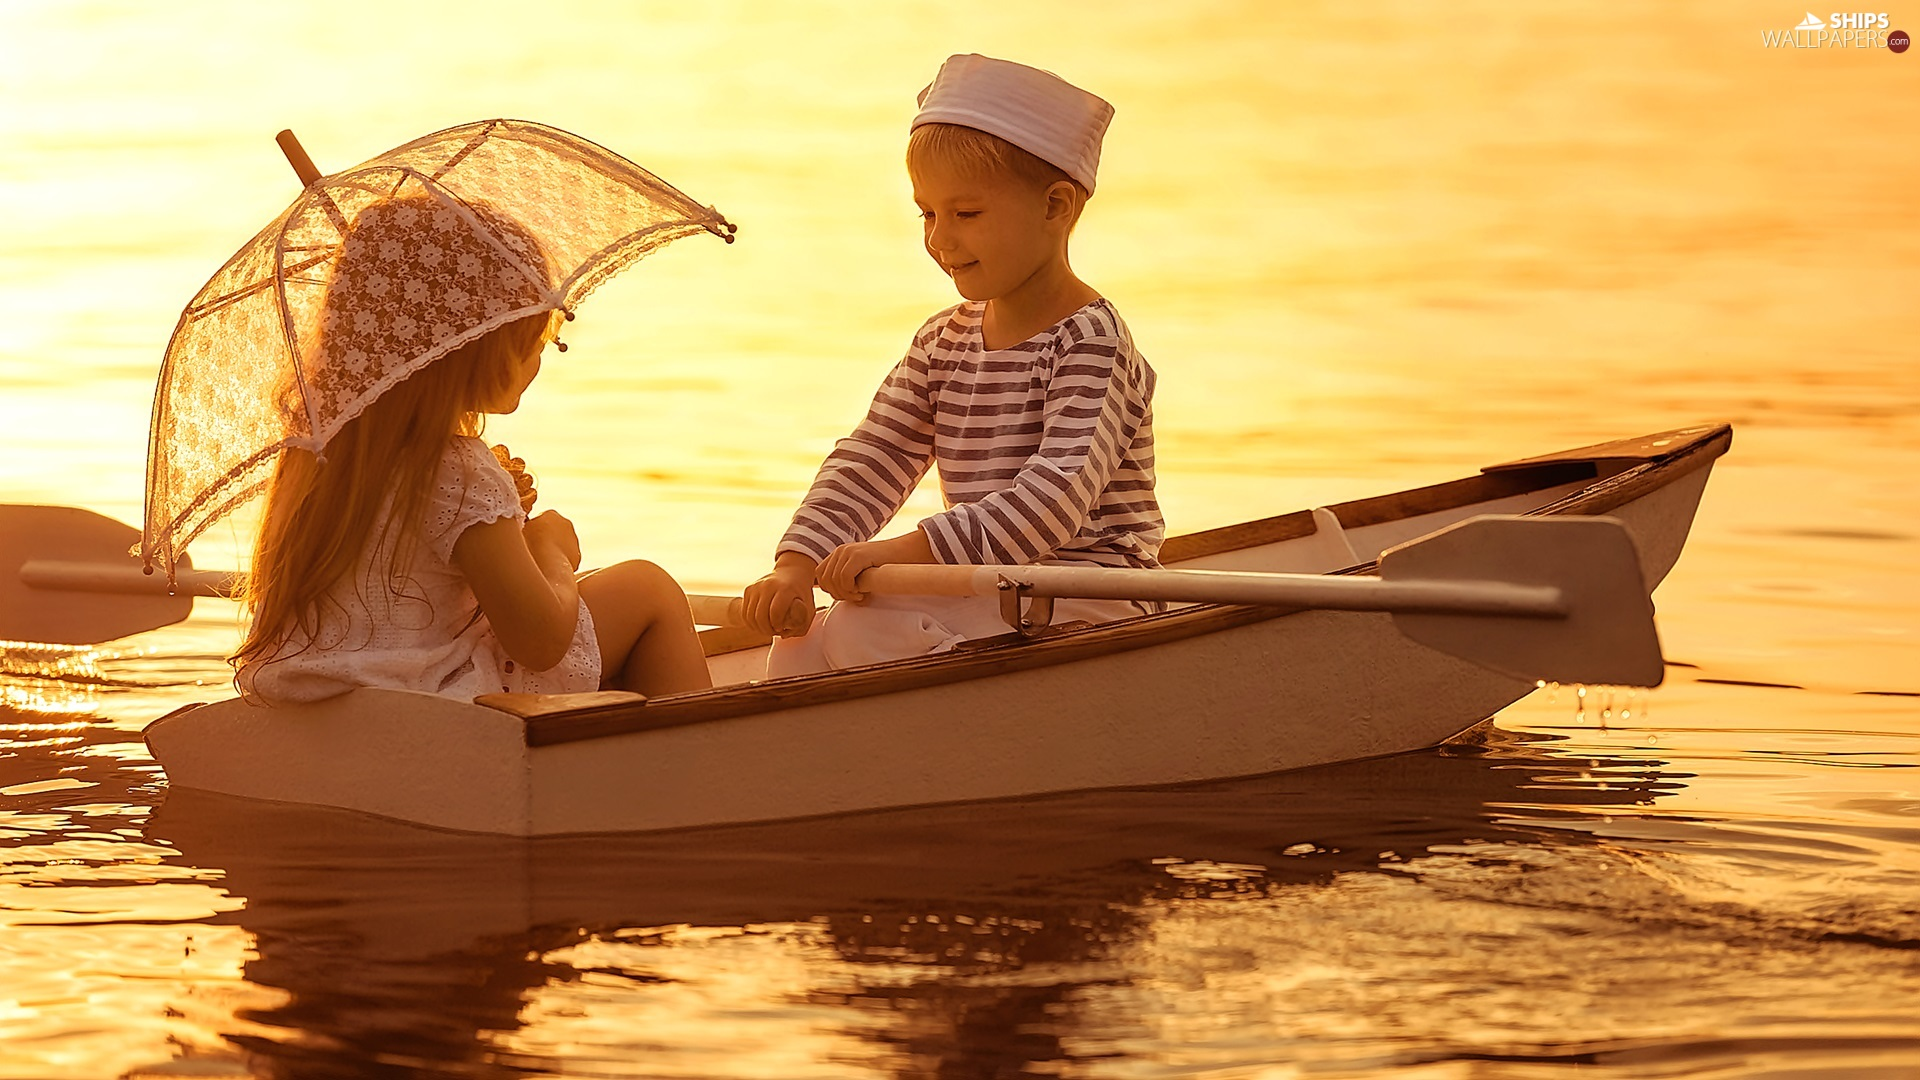 River, two, Great Sunsets, umbrella, Boat, Kids